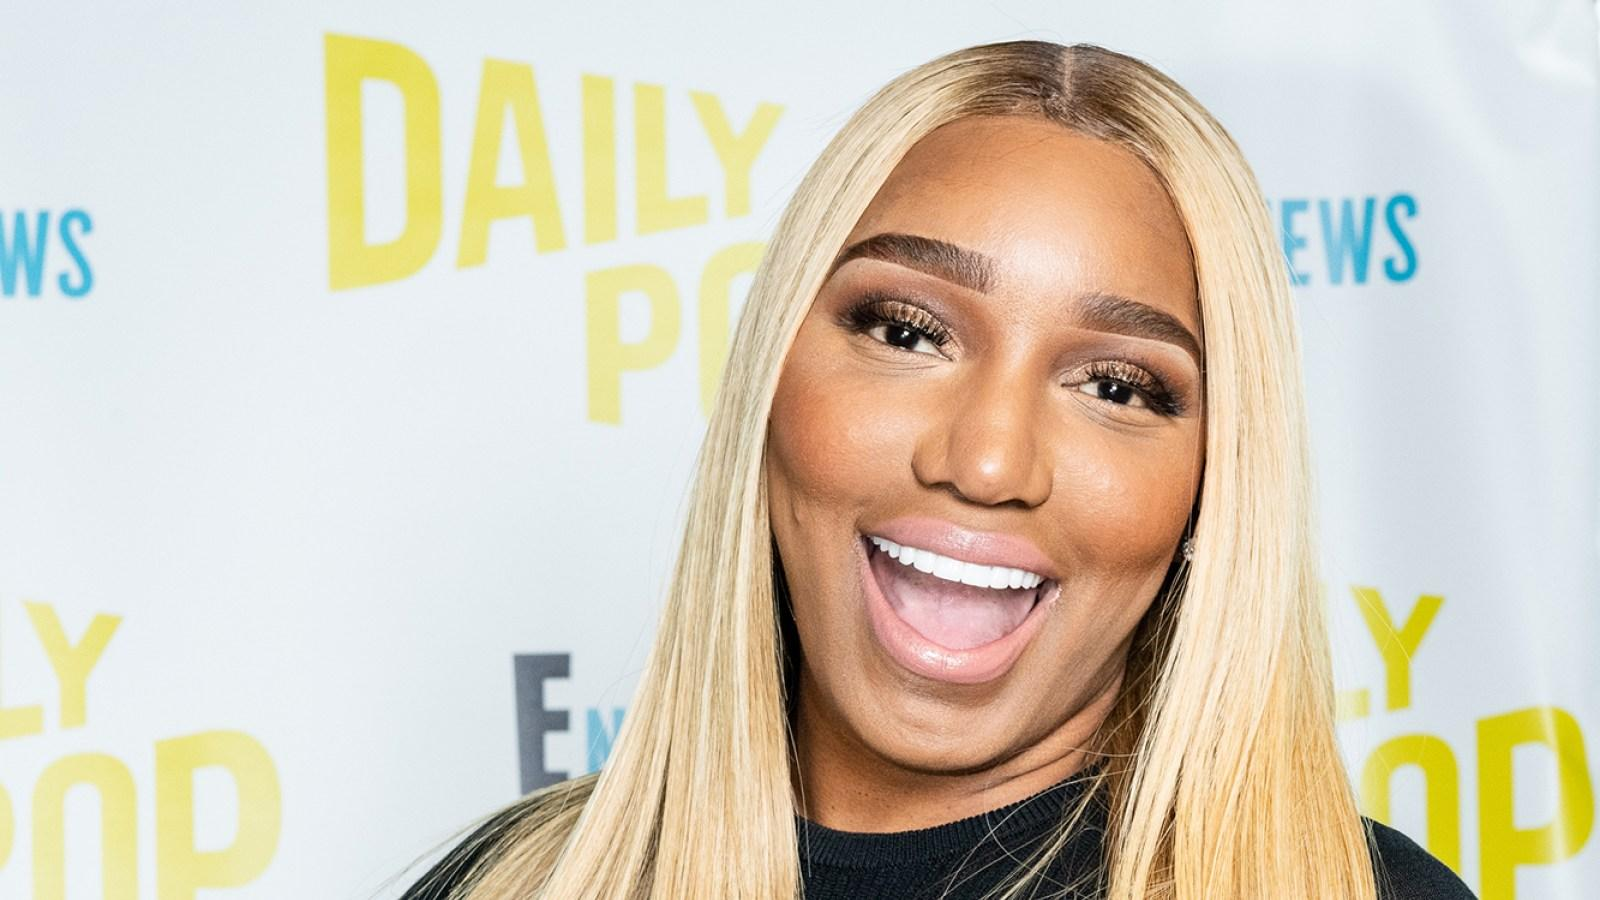 NeNe Leakes Hints At The Fact That She's The Main Attraction Of RHOA